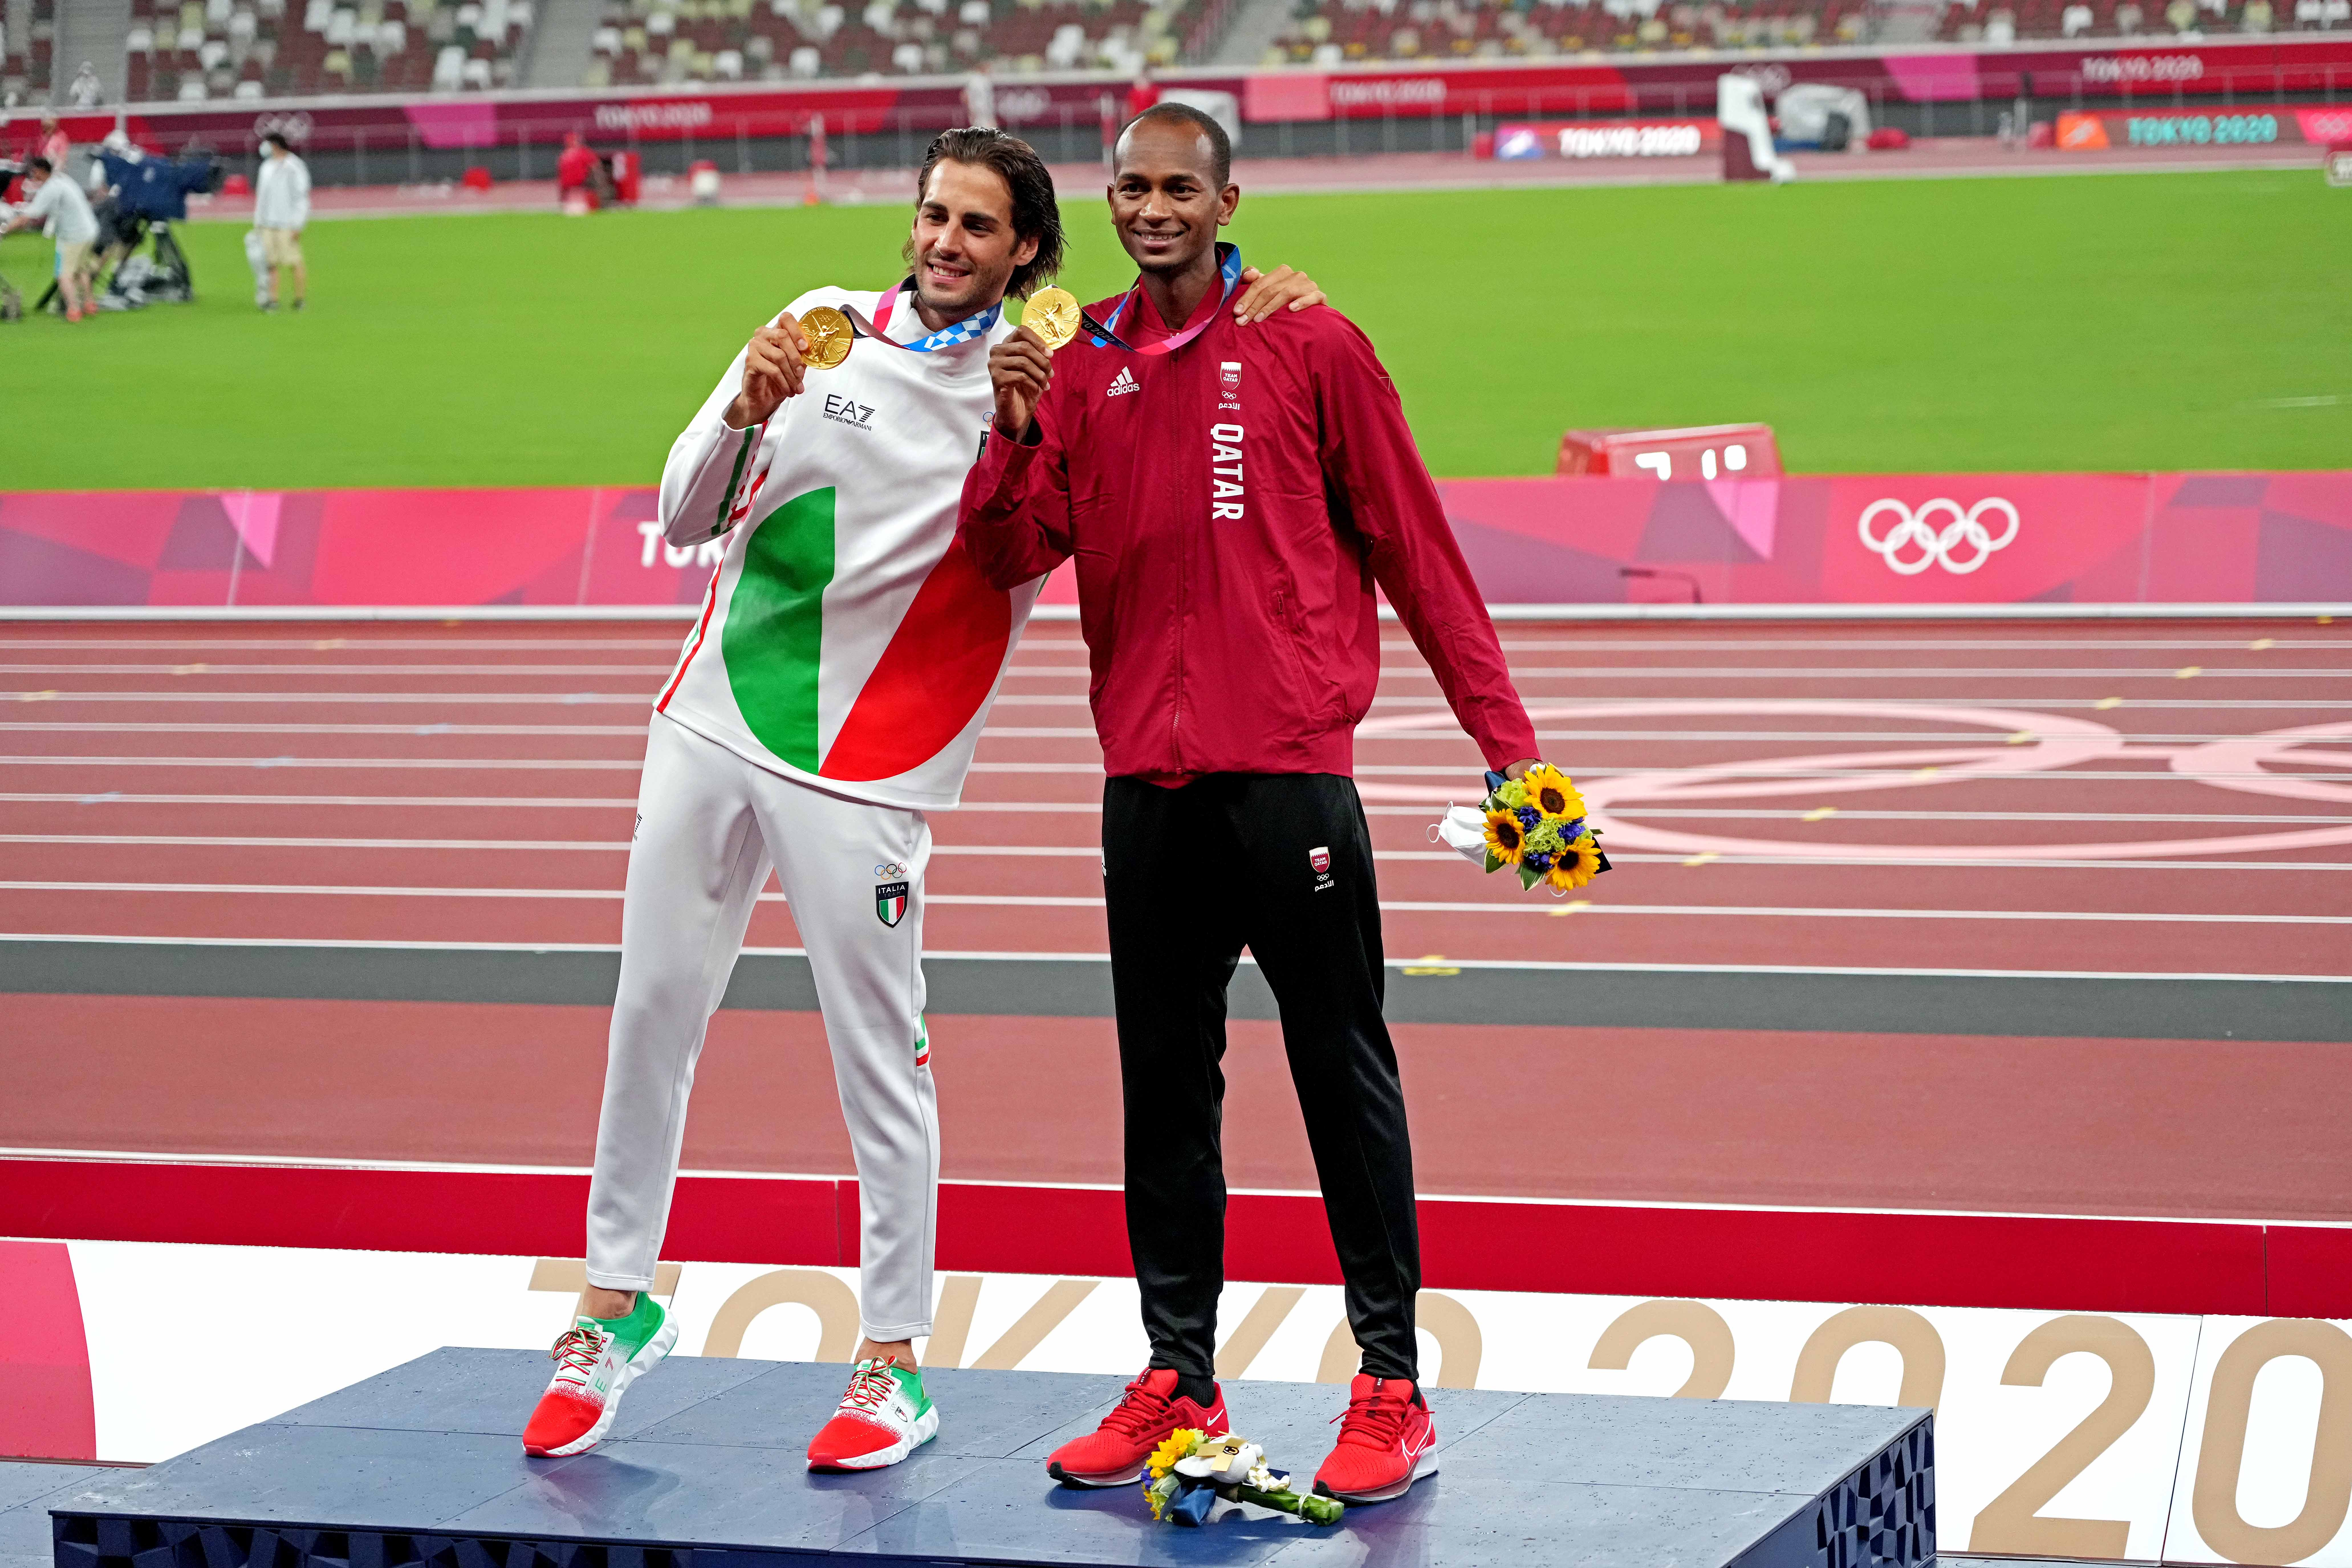 Gianmarco Tamberi (ITA) and Mutaz Essa Barshim (QAT) share the gold medal in the men's high jump at the Tokyo Olympics.